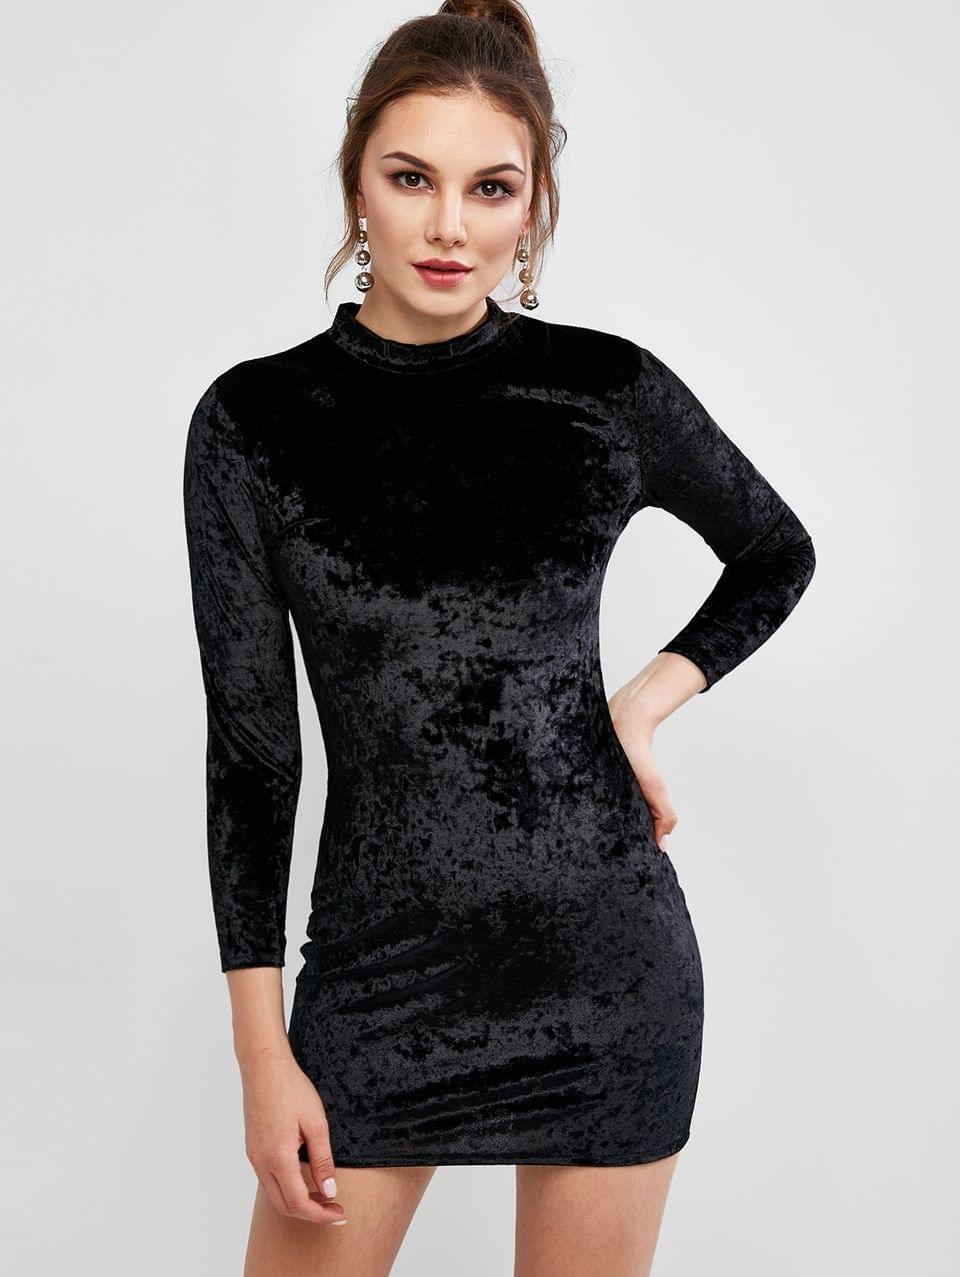 Women's Velvet Long Sleeve Crew Neck Bodycon Dress - Black 2xl